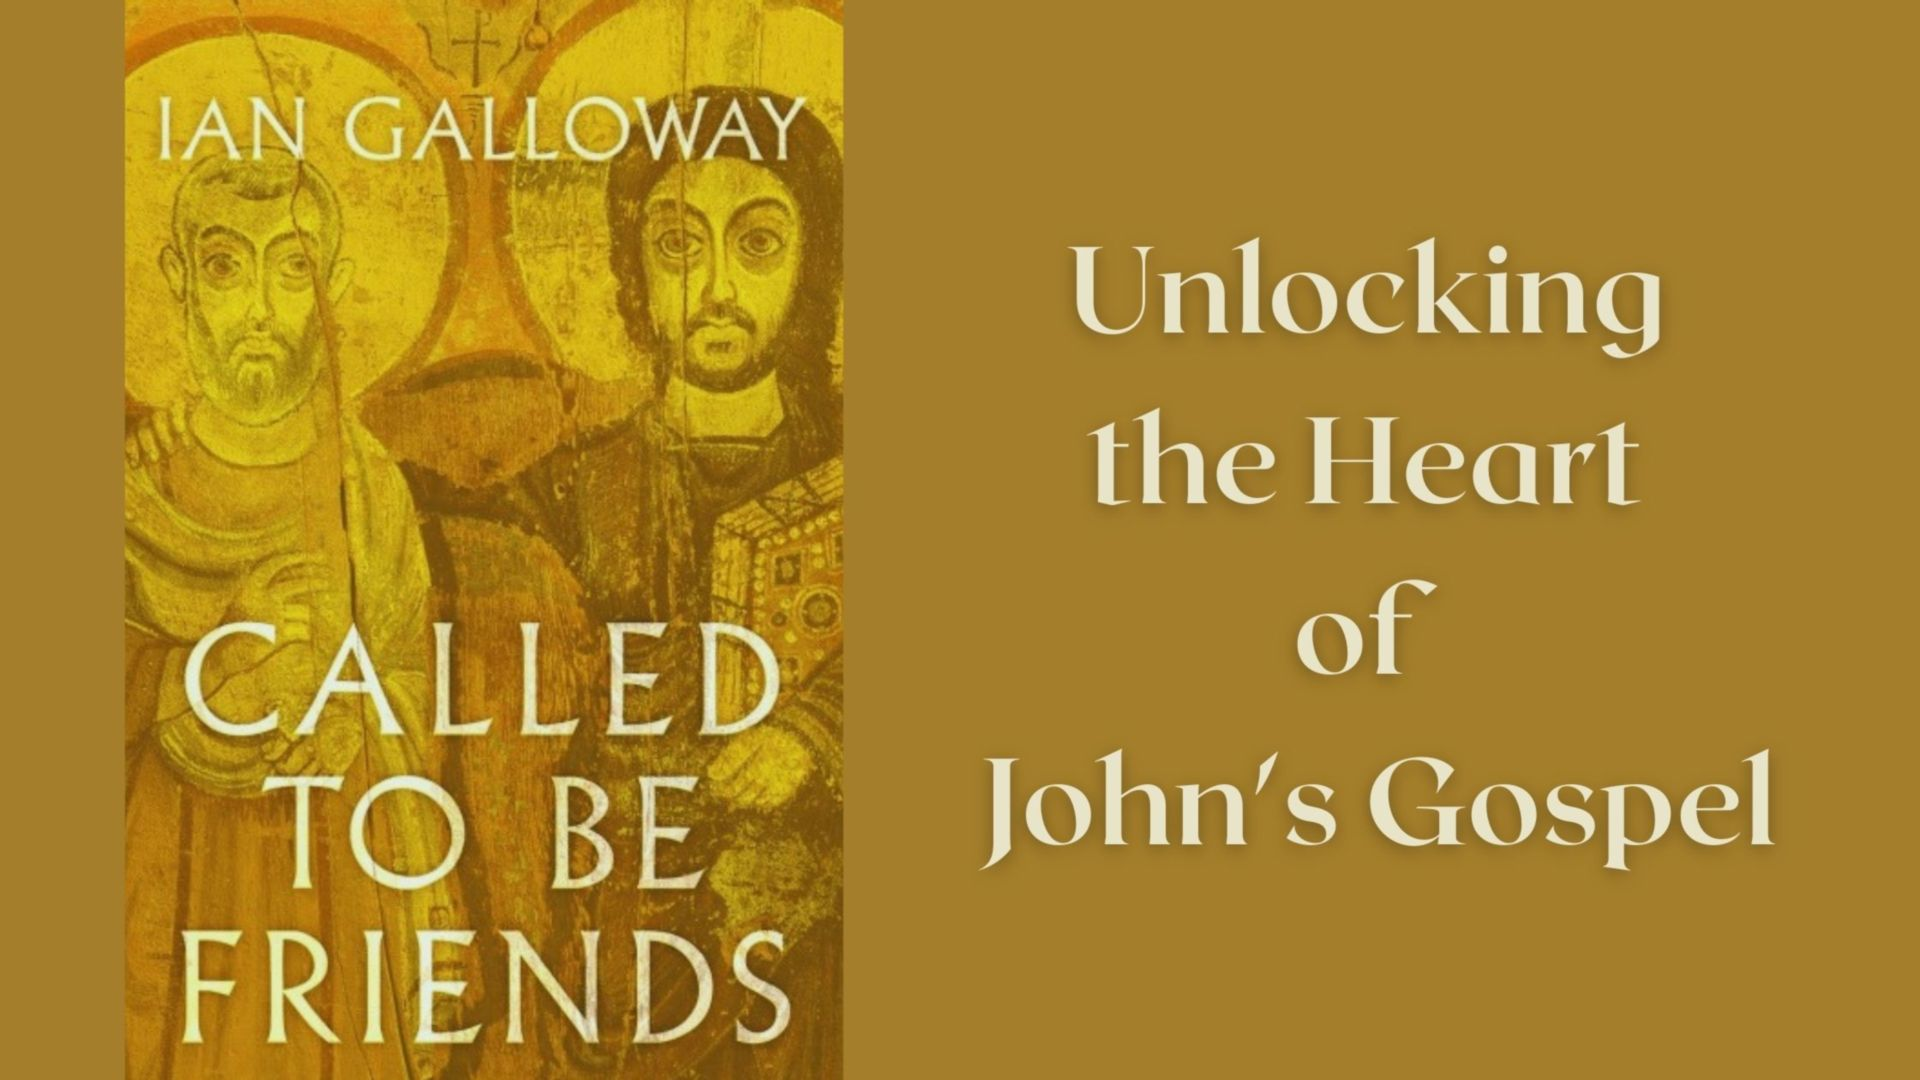 Ian Galloway talks about his new book 'Called to be Friends'